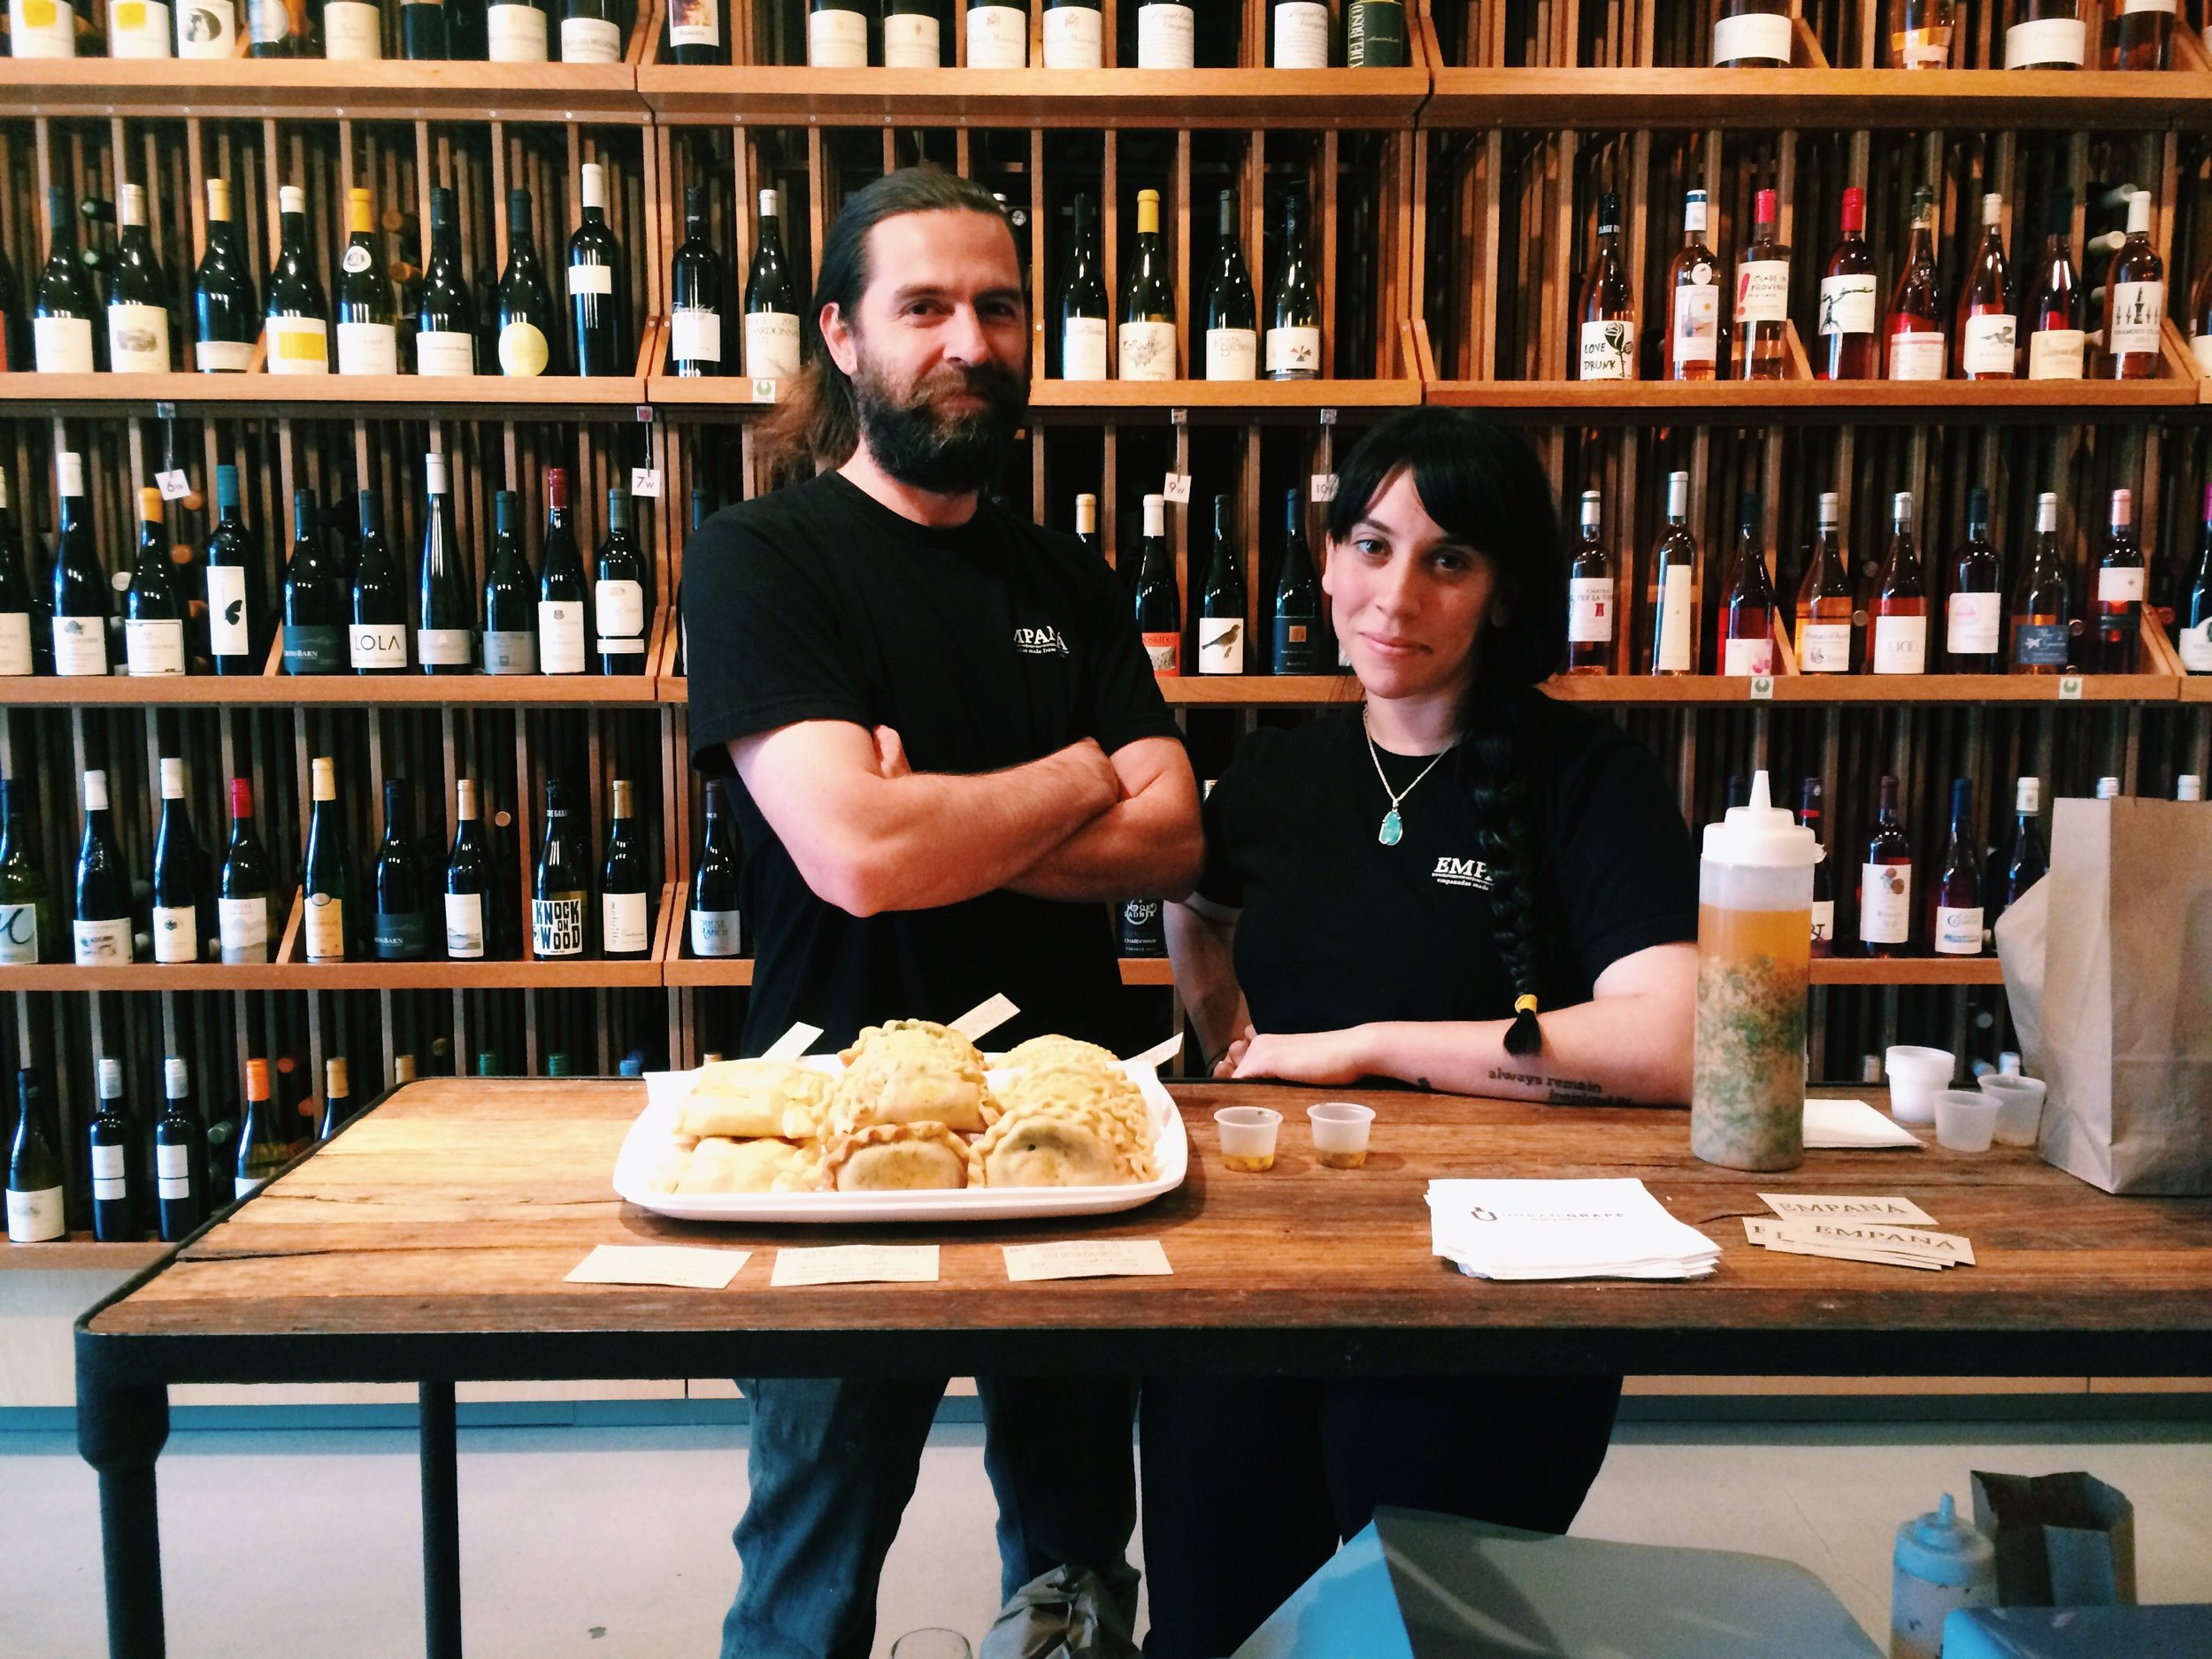 Sebastian and Melissa, looking super professional in a wine shop.